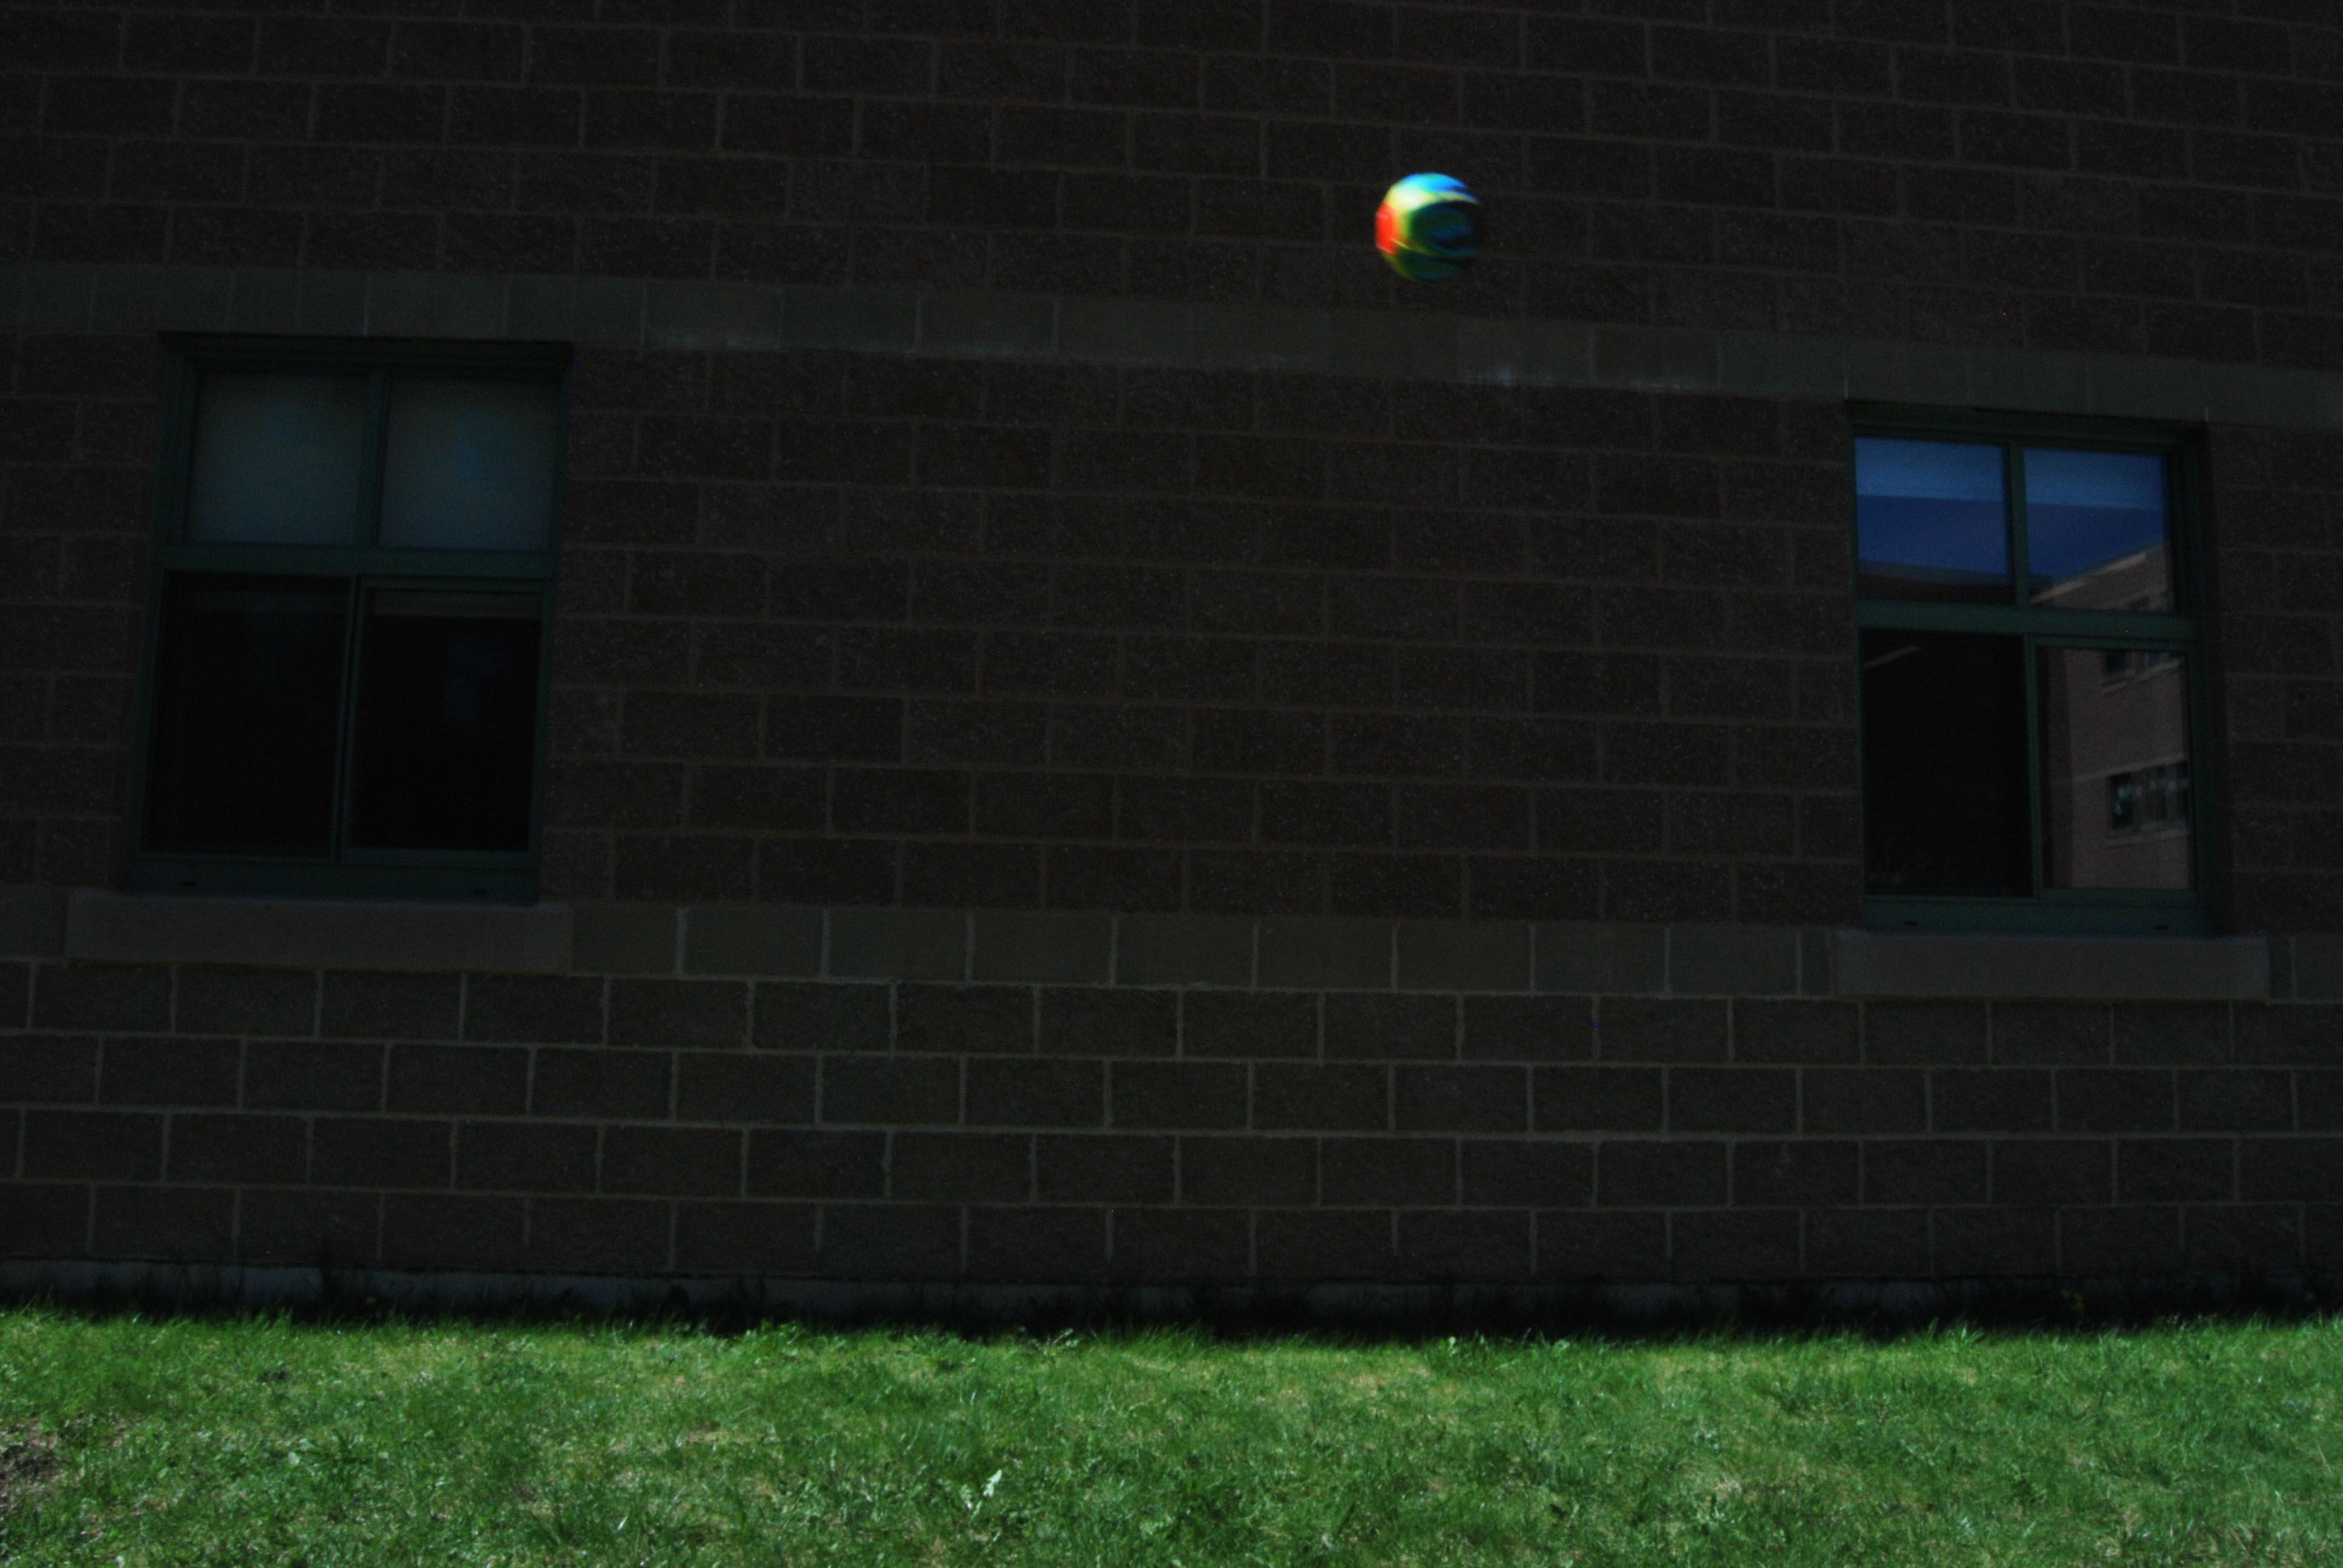 This is my stop action picture. It shows how the ball is stopped in the air when it was in action when it was taken. I brightened it because it was orignially very dark.